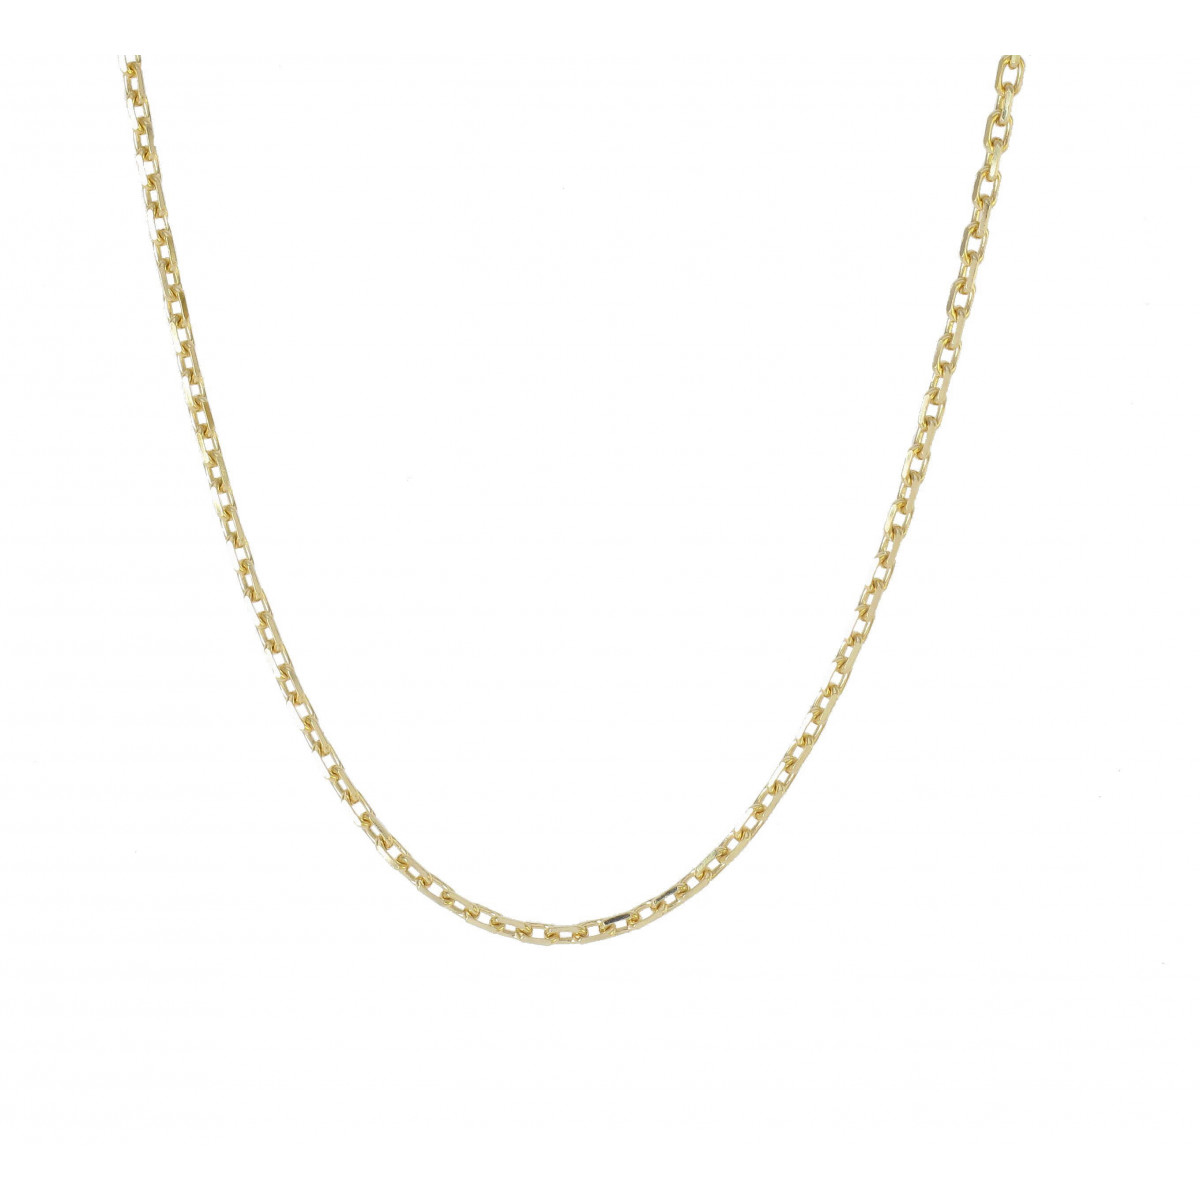 GOLD CHAIN 60 CENTIMETERS